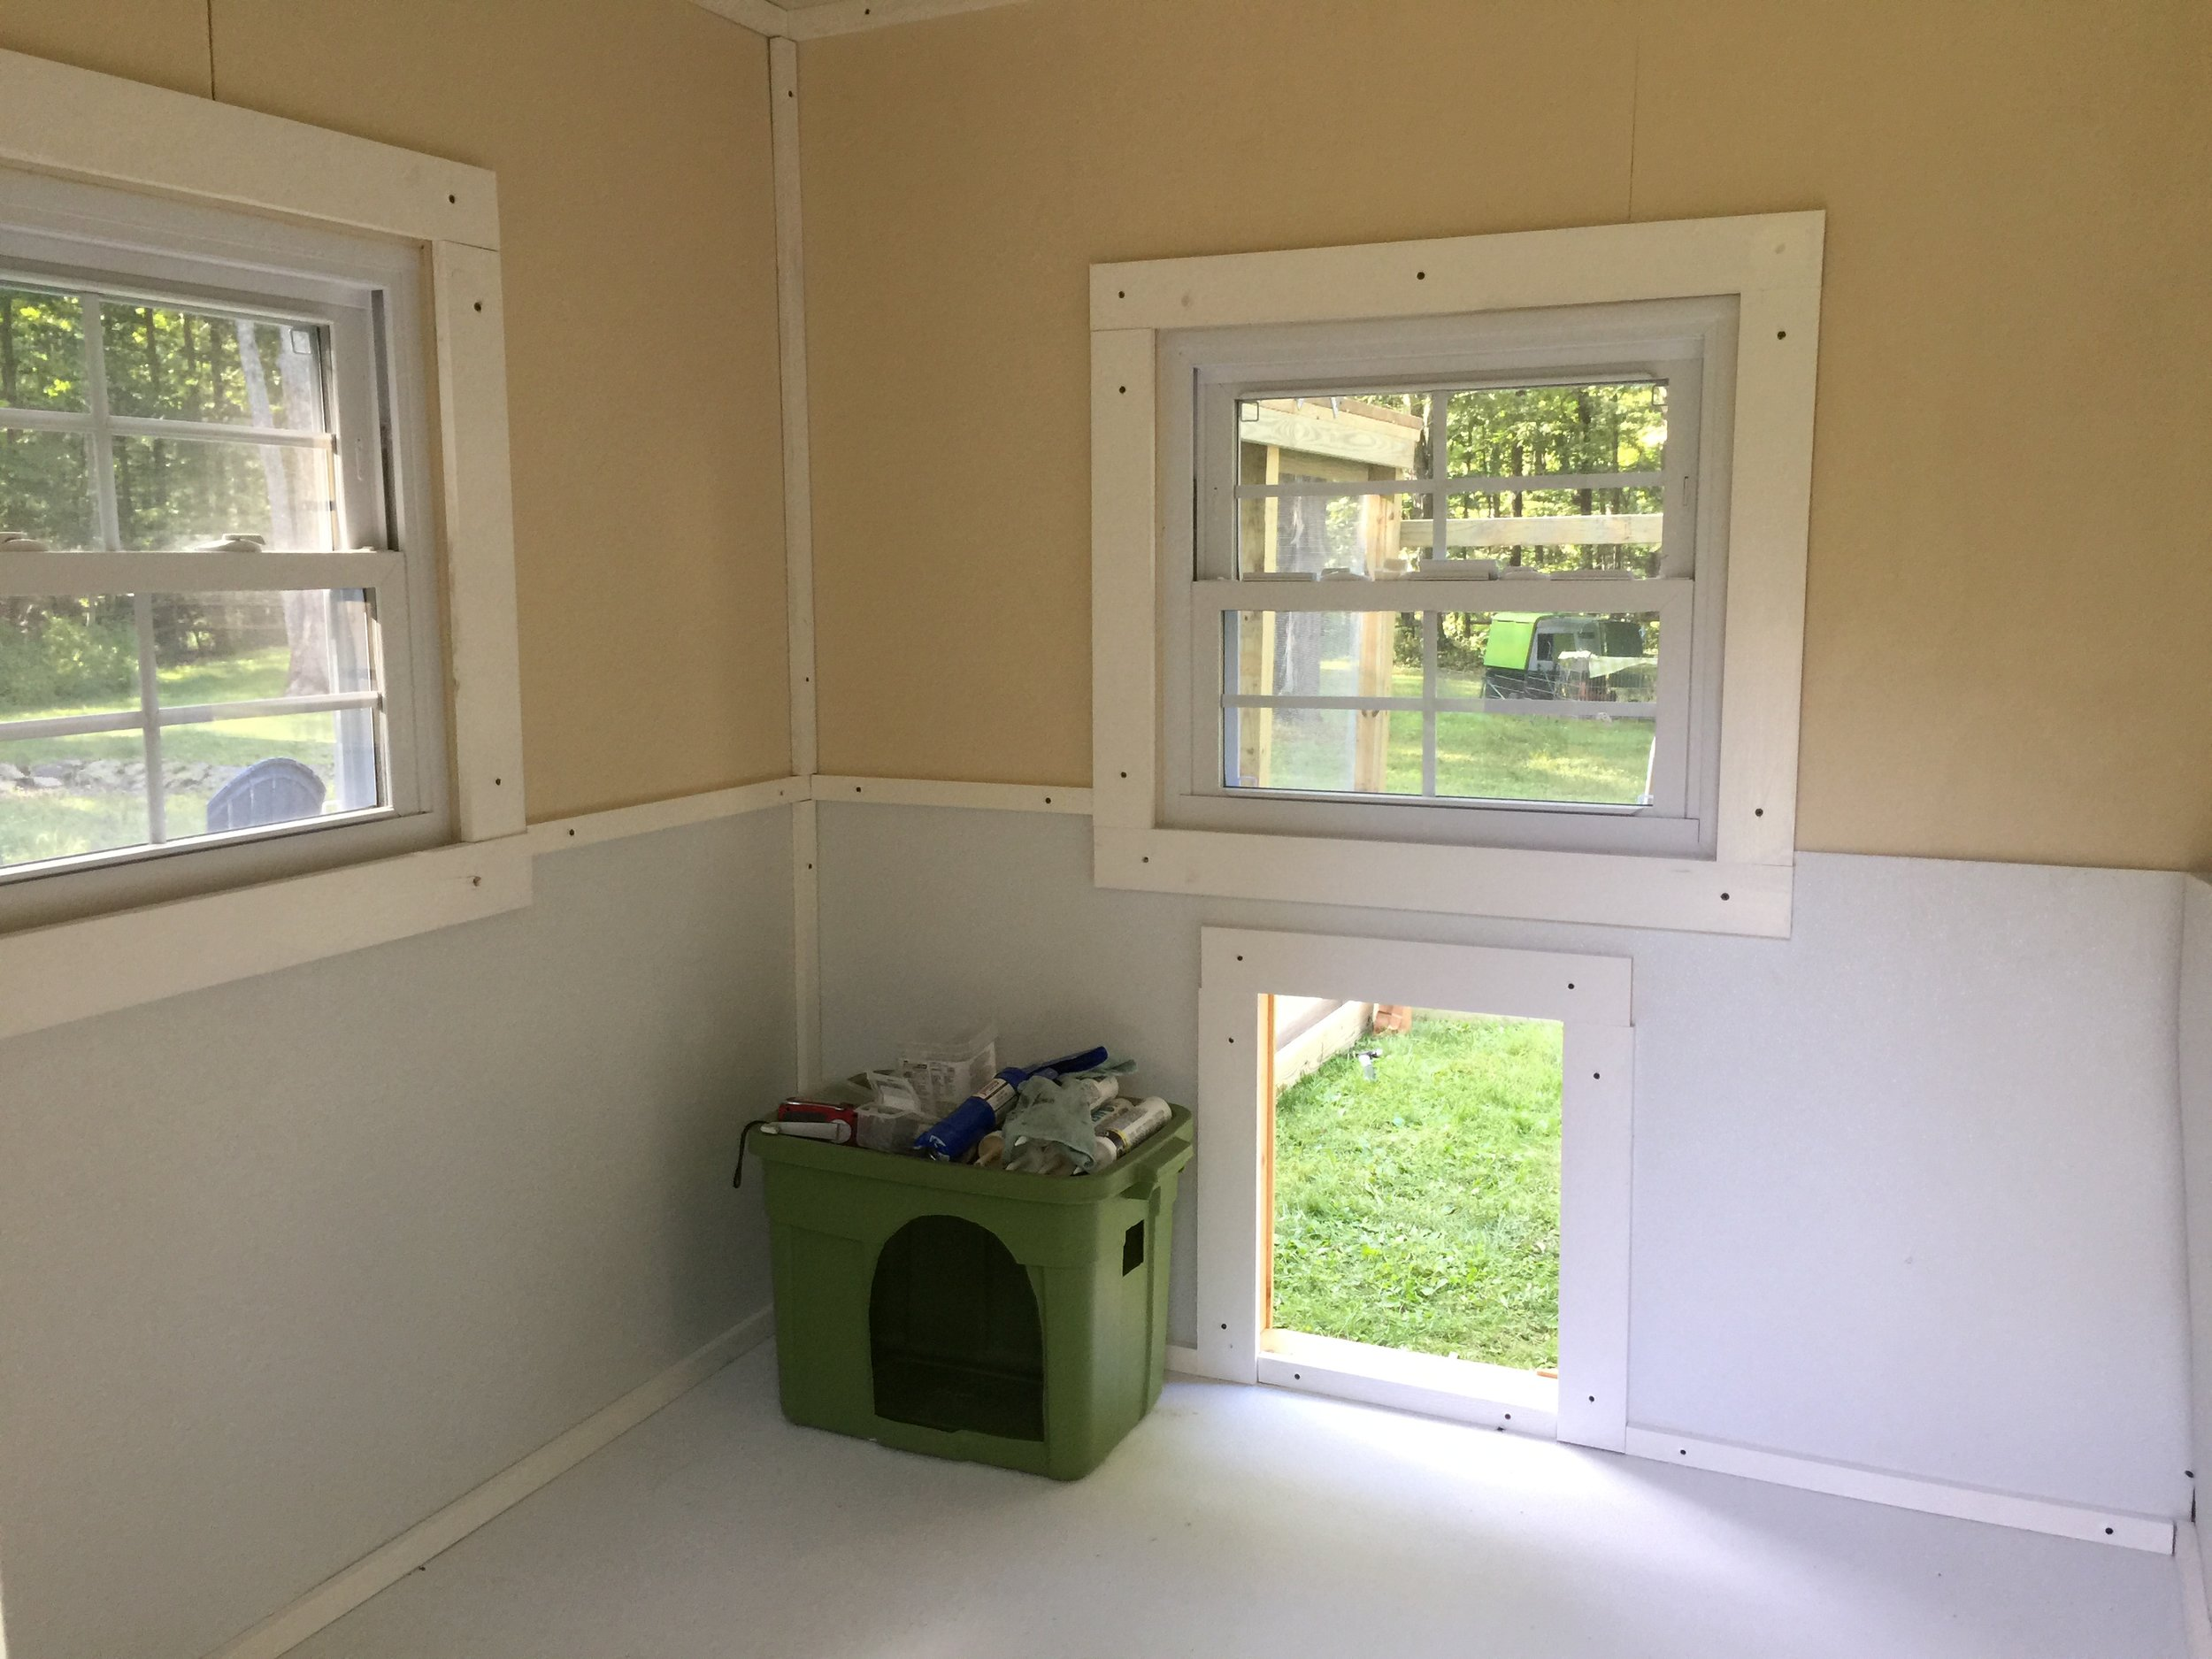 A view of the inside of the coop, almost done but with no divider...